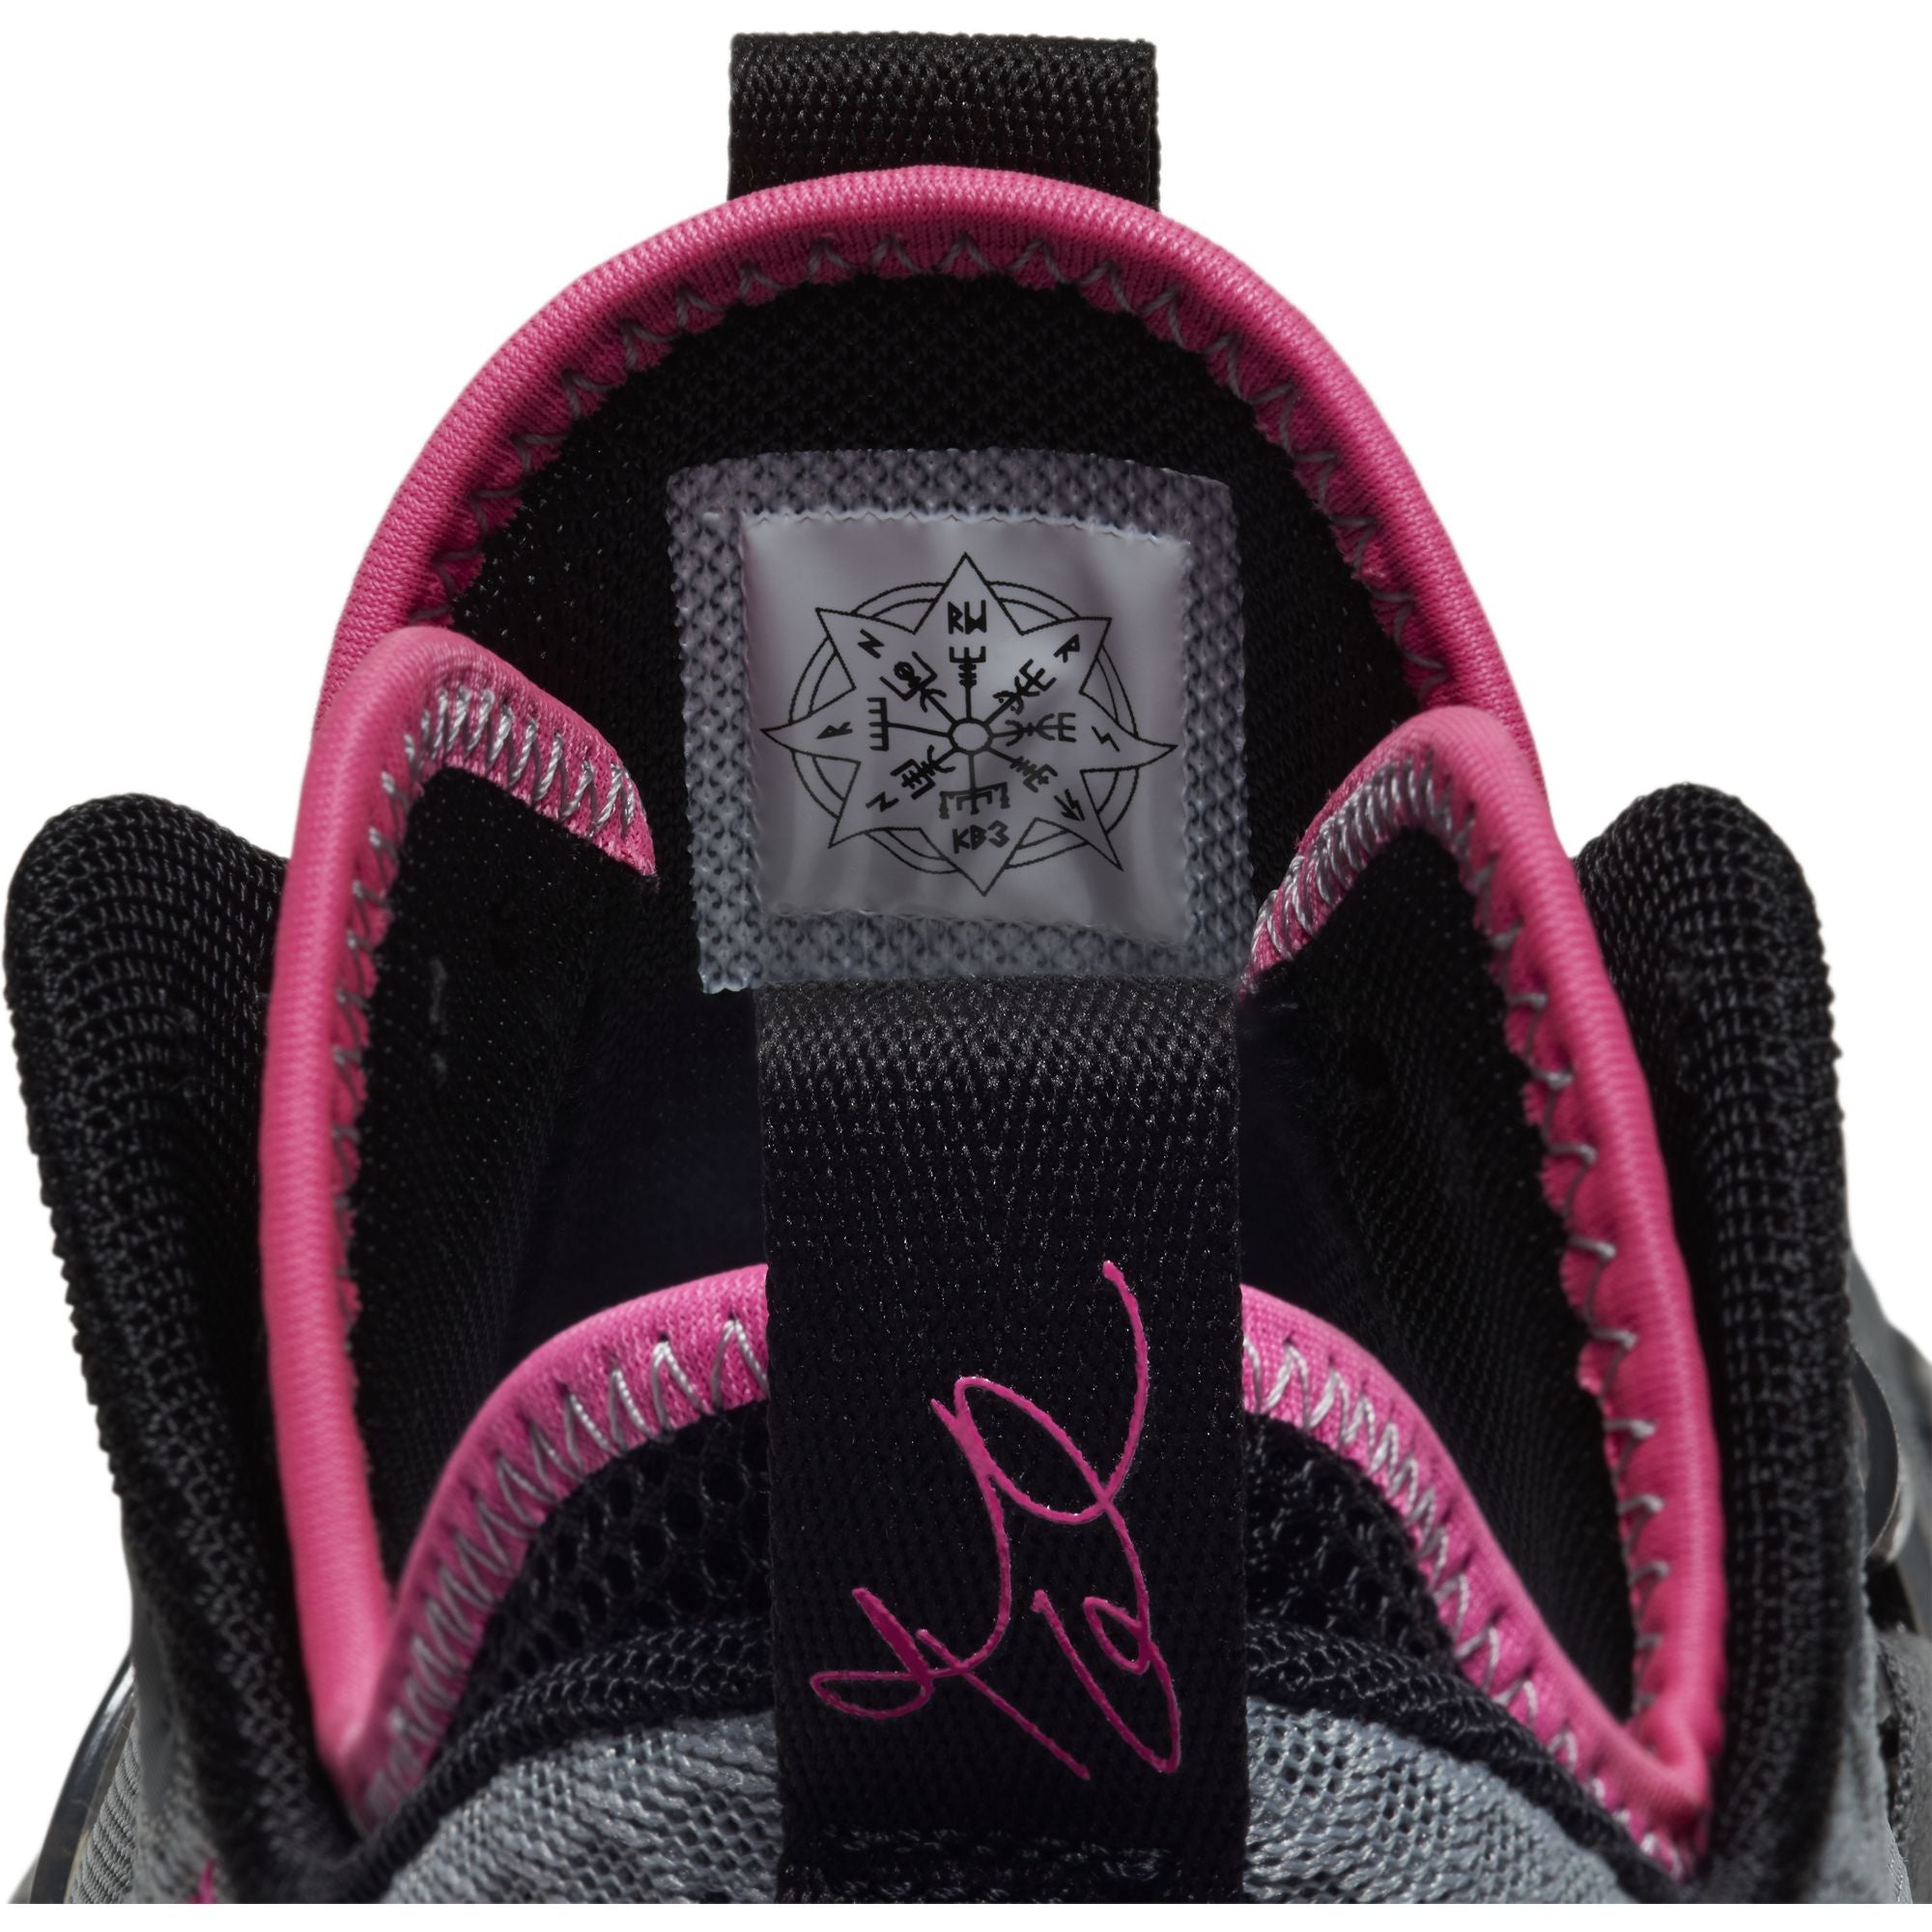 Nike Jordan Why Not Zer0.3 Basketball Boot/Shoe - Particle Grey/Pink Blast/Black/Iron Grey